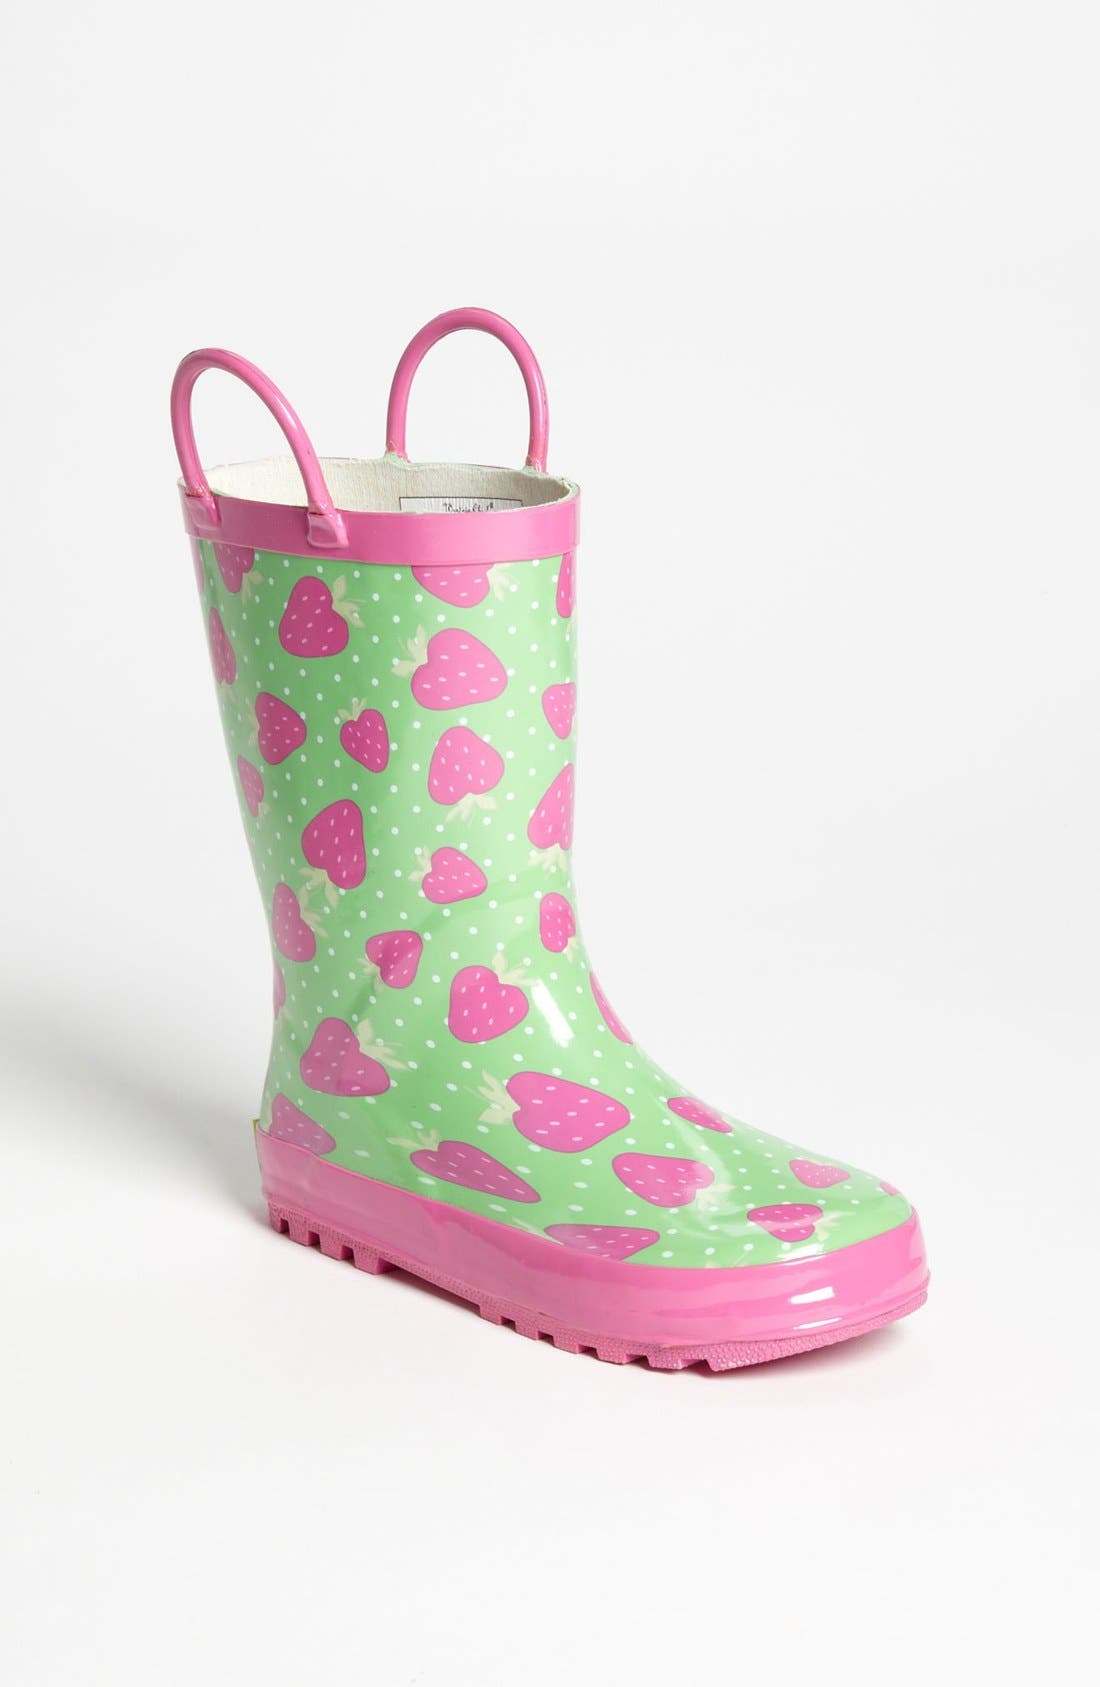 Alternate Image 1 Selected - Western Chief 'Strawberry Toss' Rain Boot (Toddler & Little Kid)